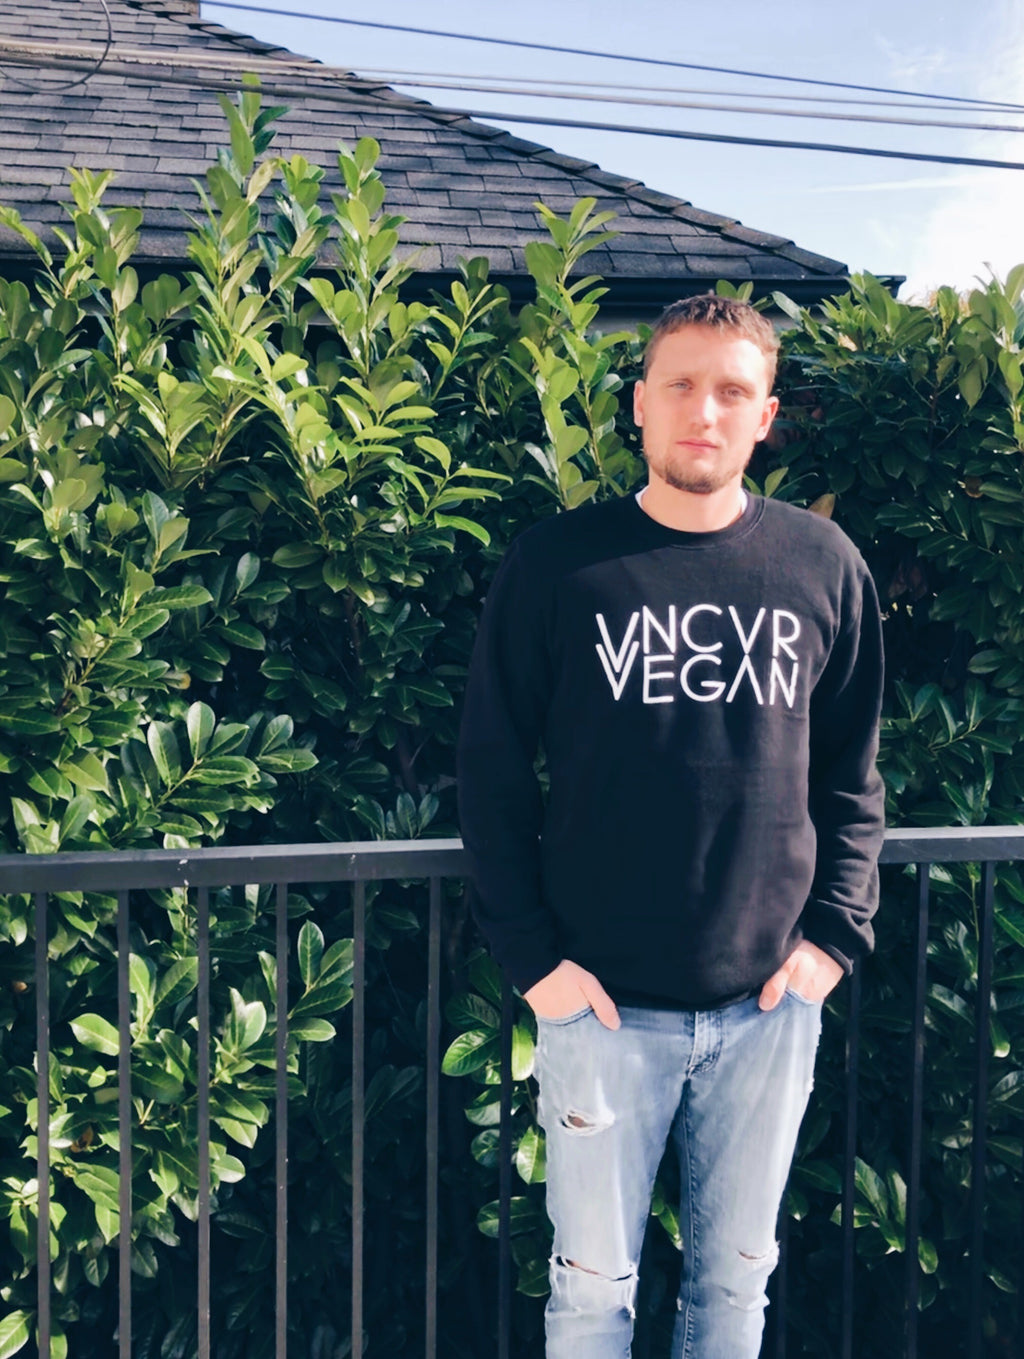 """VNCVR VEGAN"" Black Sweater (Organic Cotton/Rayon Bamboo)"